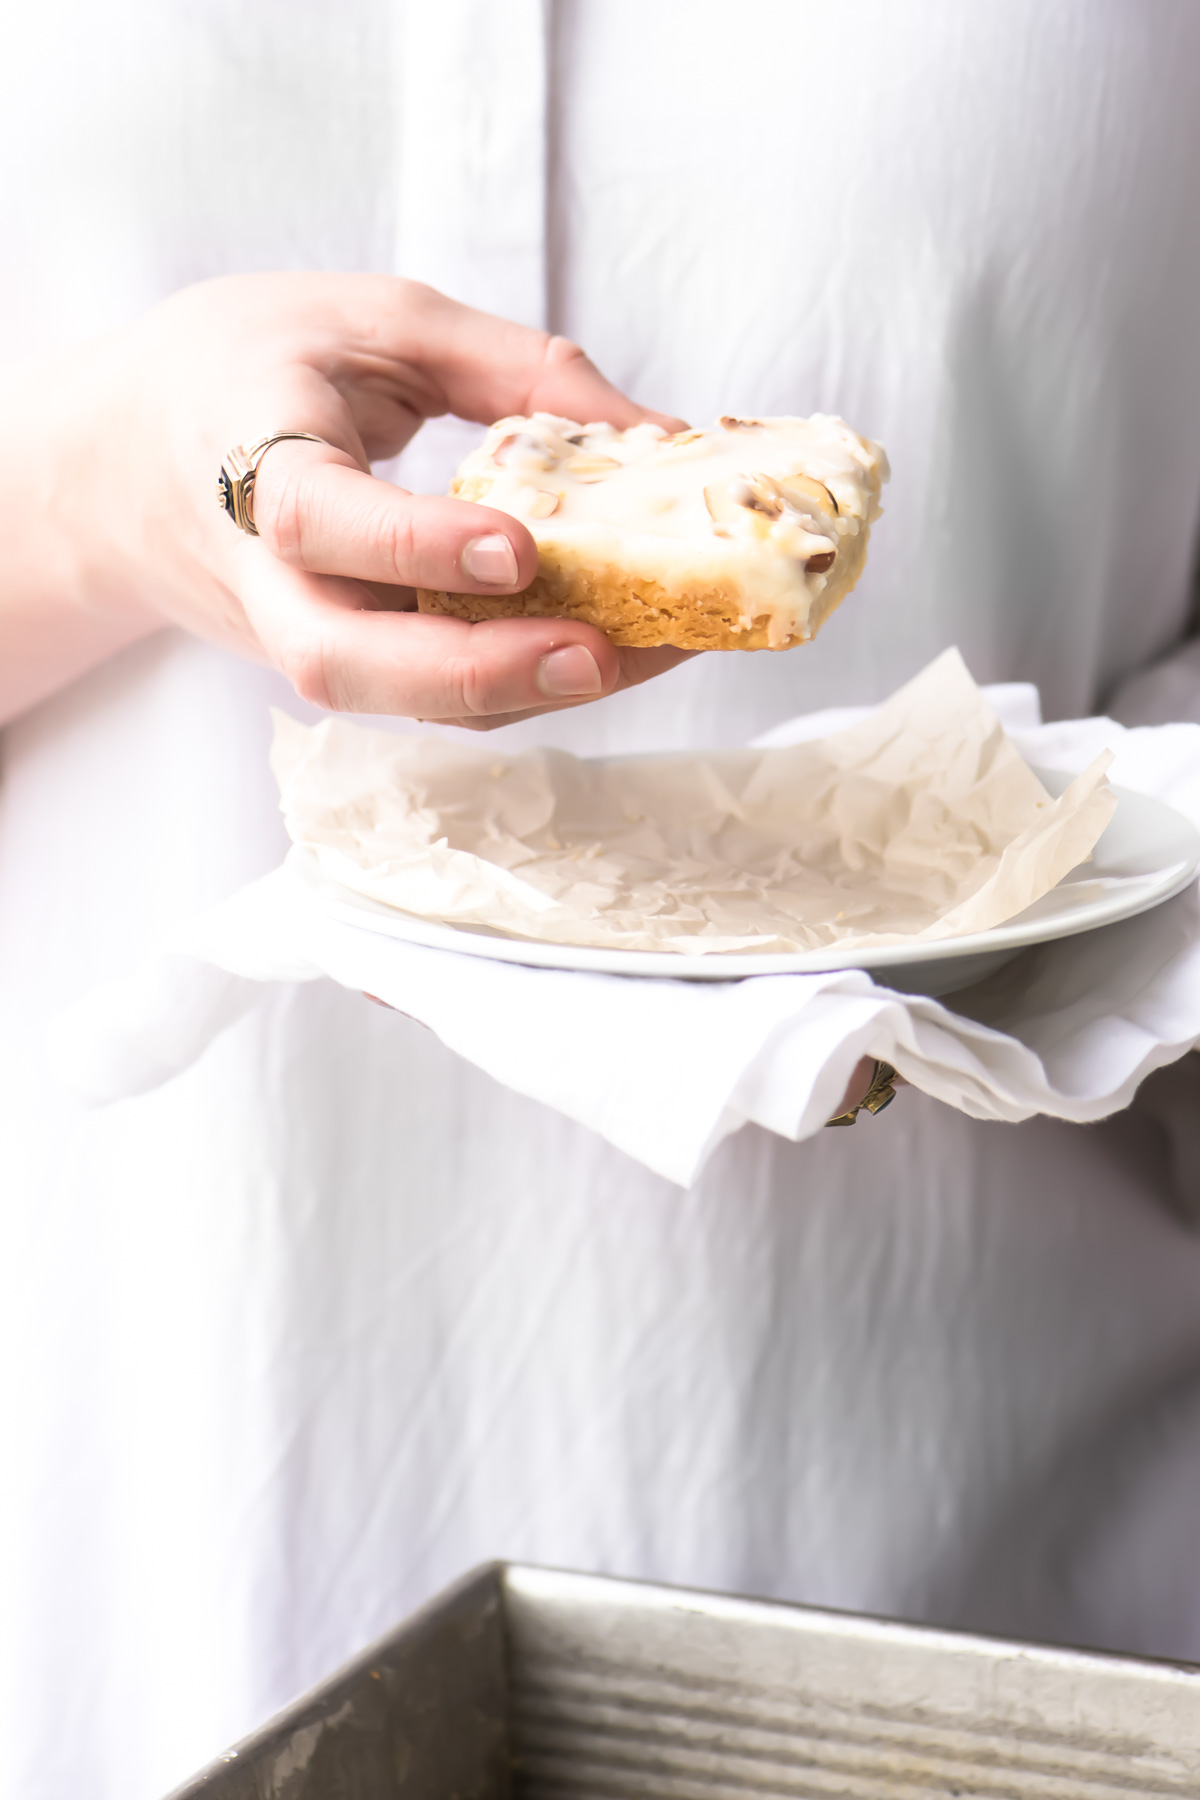 Holding an almond shortbread bar with a plate and napkin